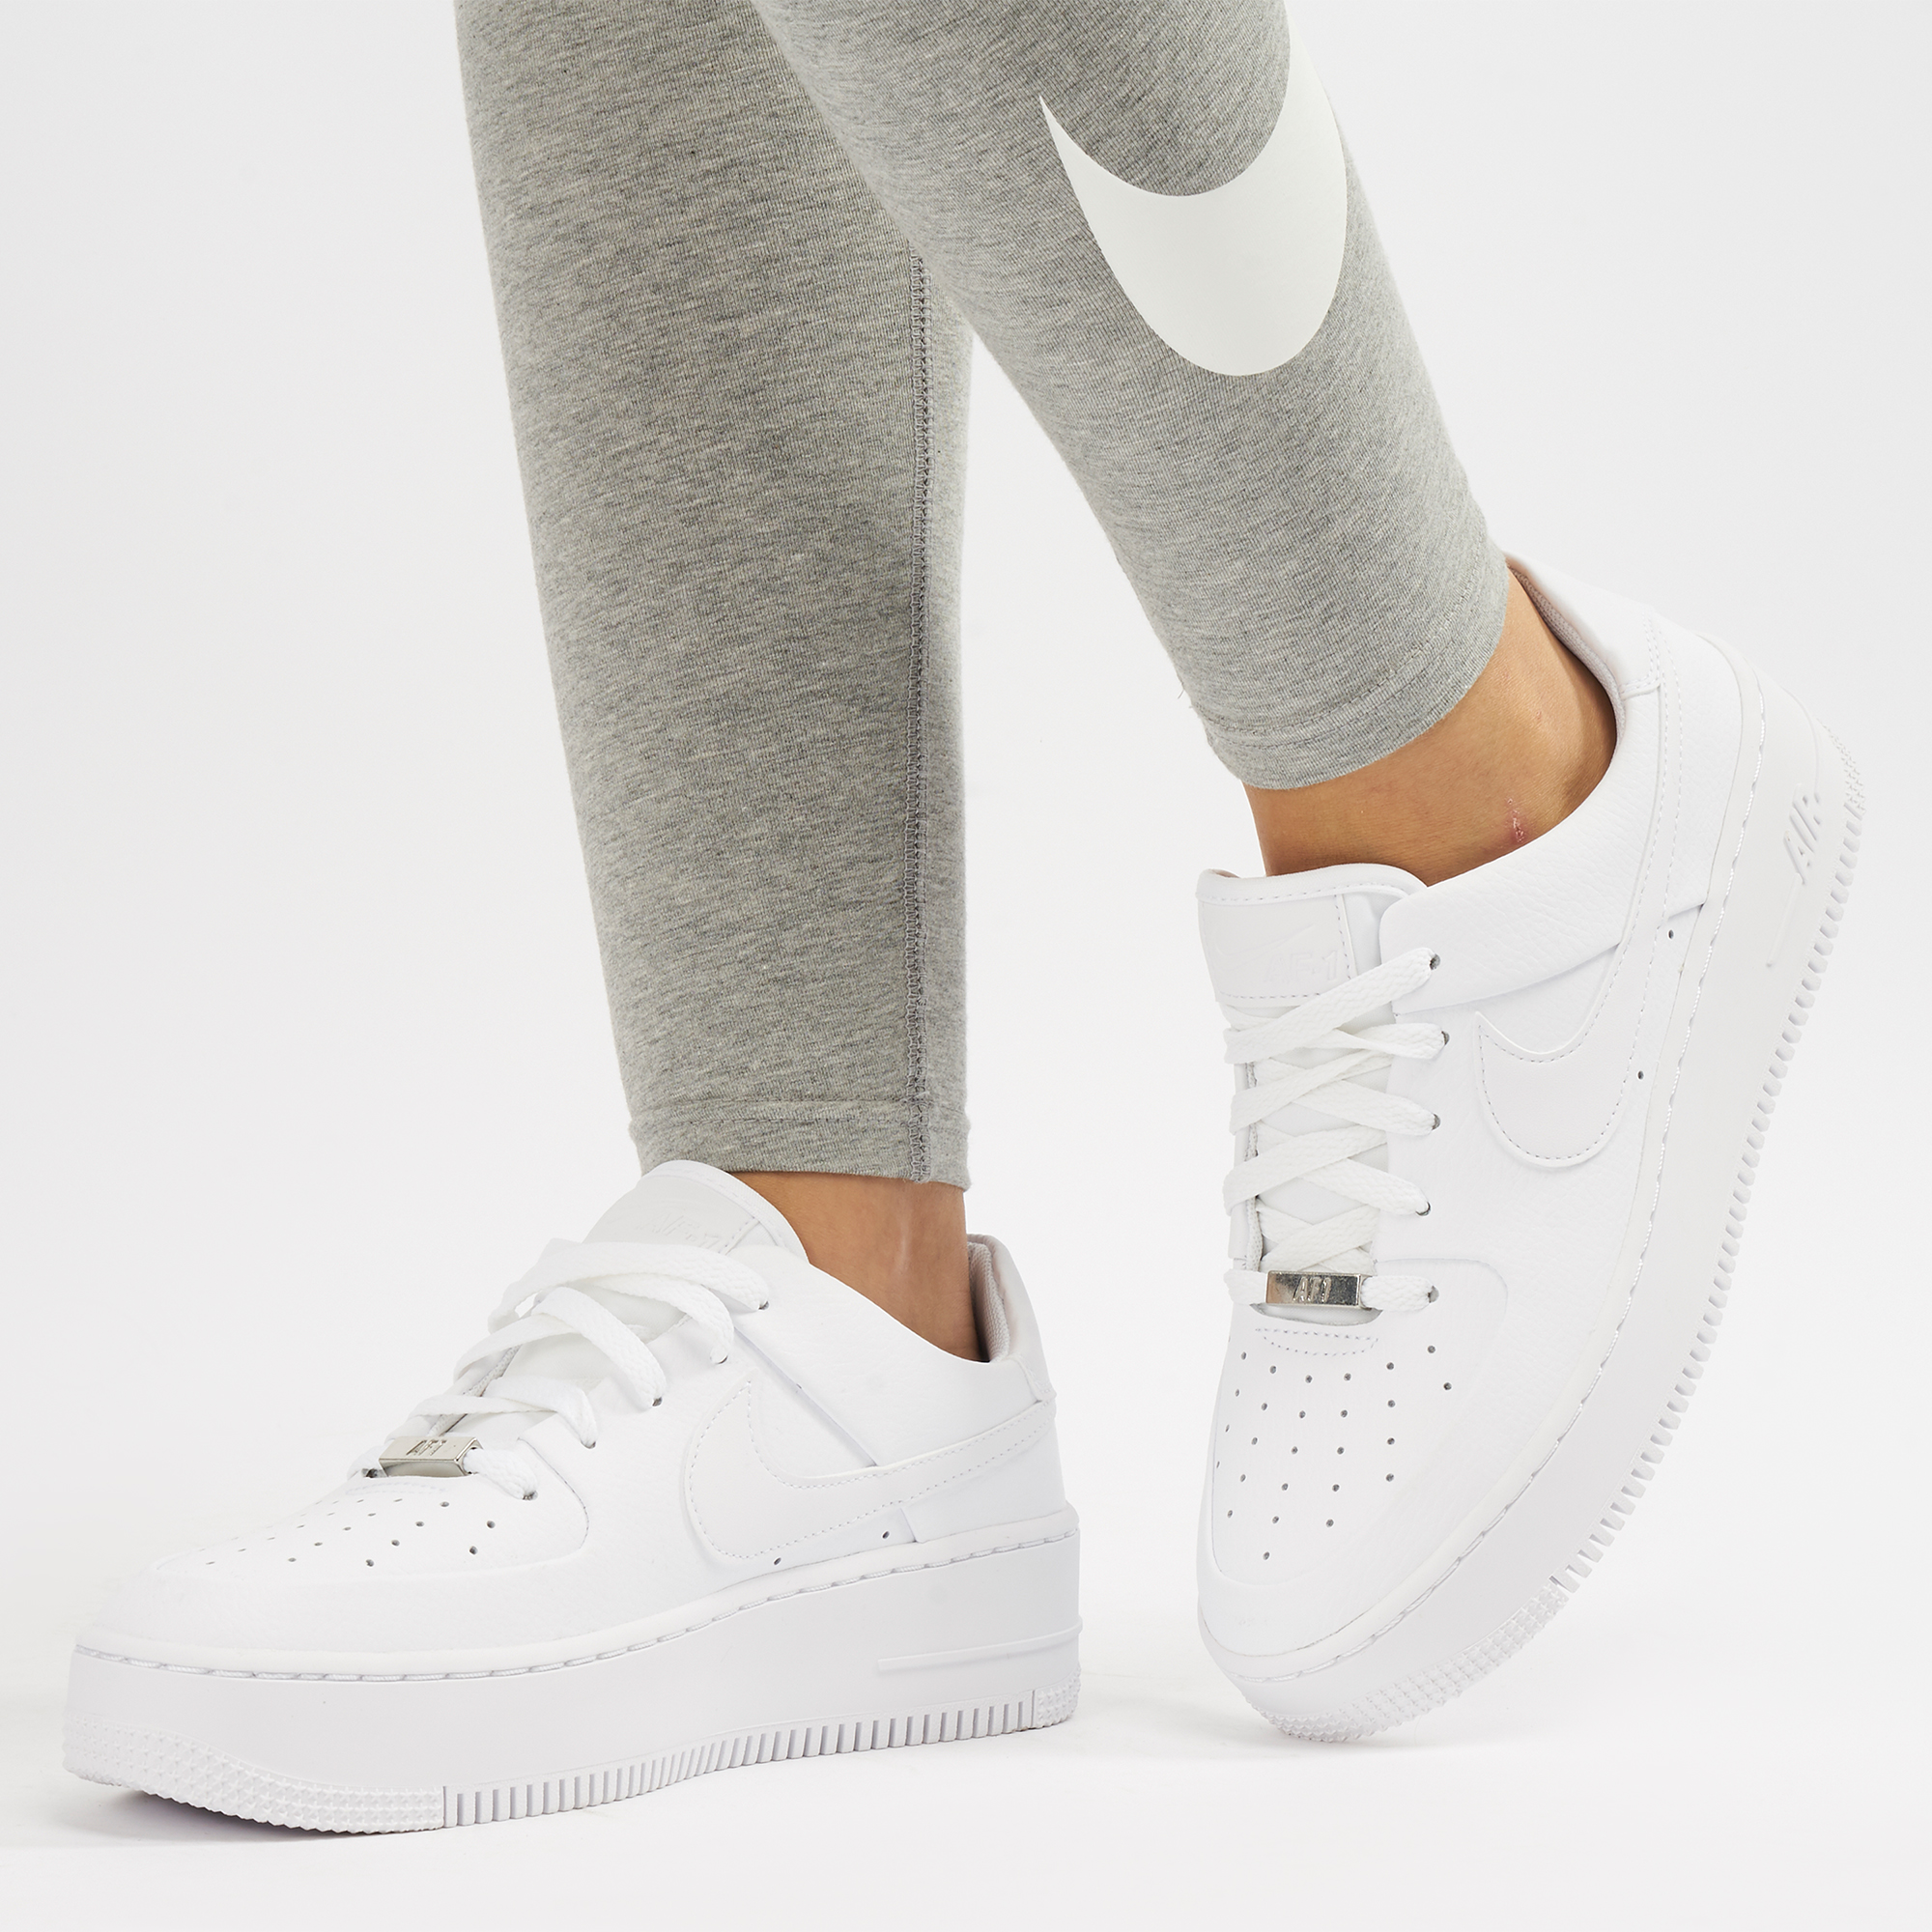 where can i buy wholesale online save up to 80% Nike Air Force 1 Sage Low Shoe | Sneakers | Shoes | Sports ...